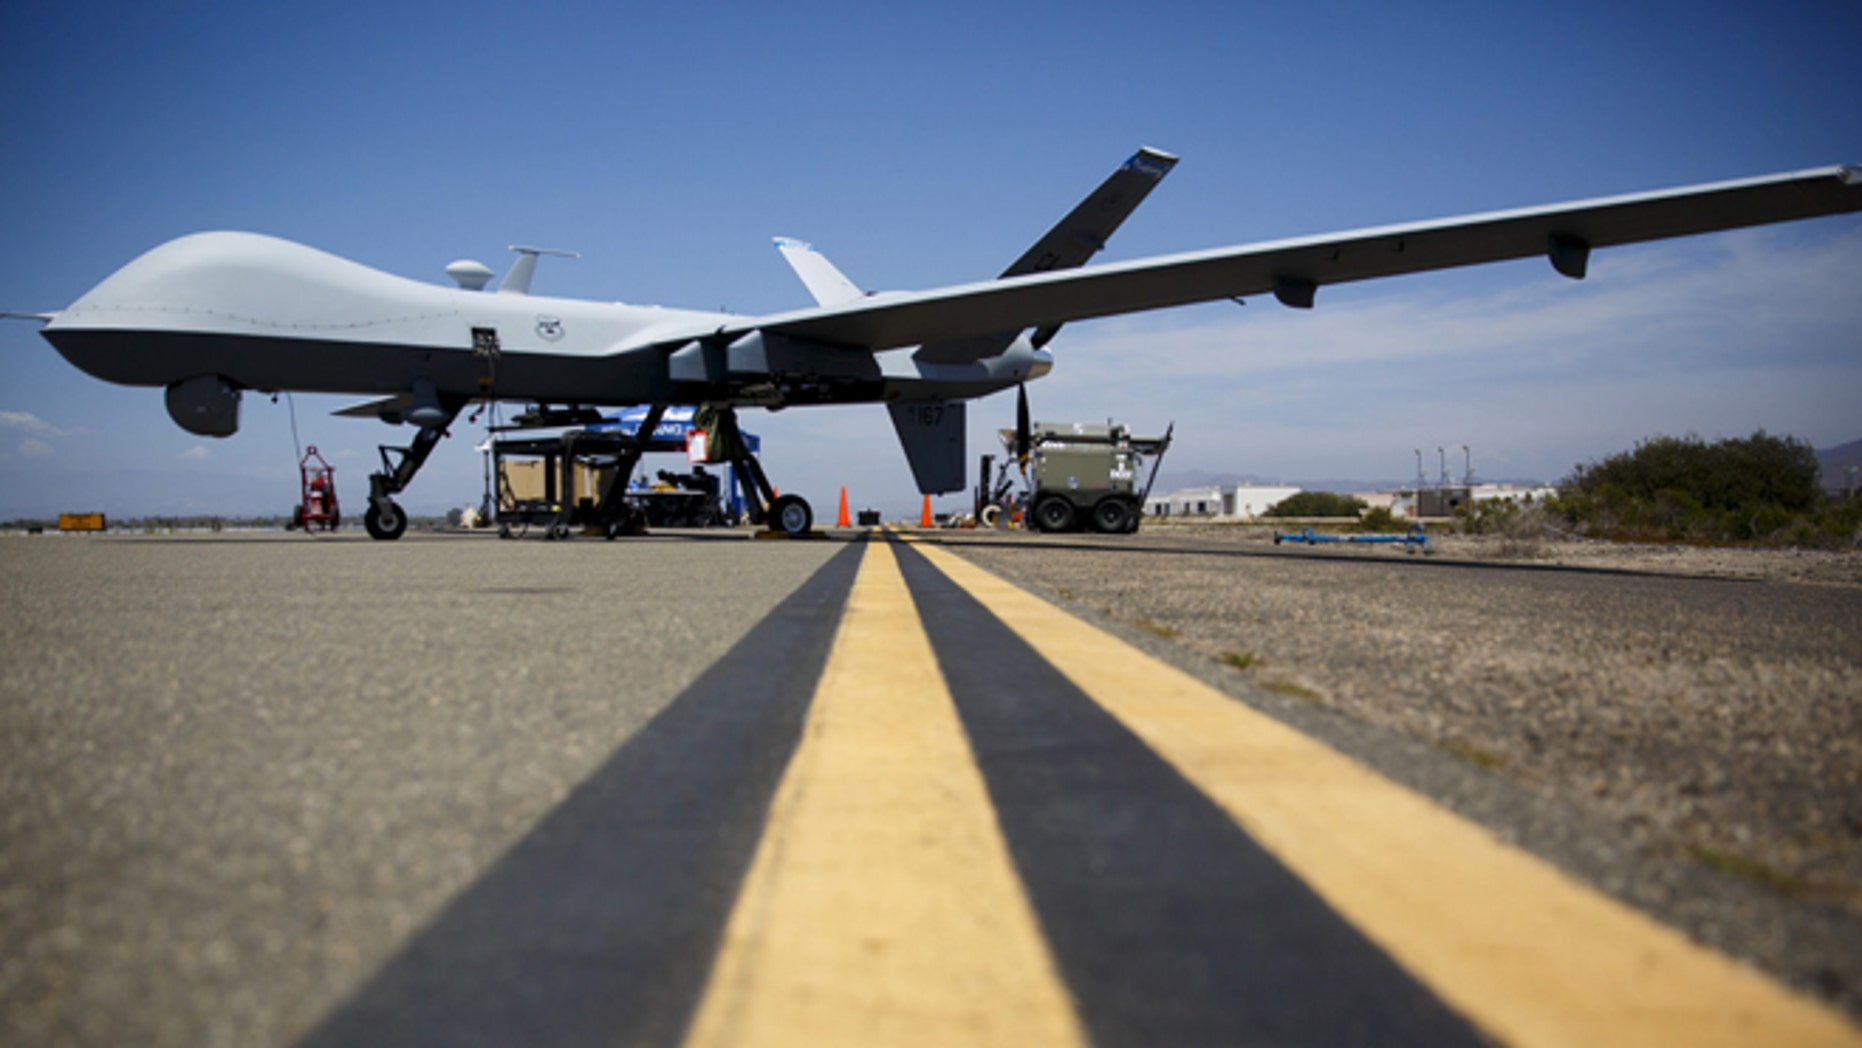 """July 31, 2015: A General Atomics MQ-9 Reaper stands on the runway during """"Black Dart"""", a live-fly, live fire demonstration of 55 unmanned aerial vehicles, or drones, at Naval Base Ventura County Sea Range, Point Mugu, near Oxnard, California. (Reuters)"""